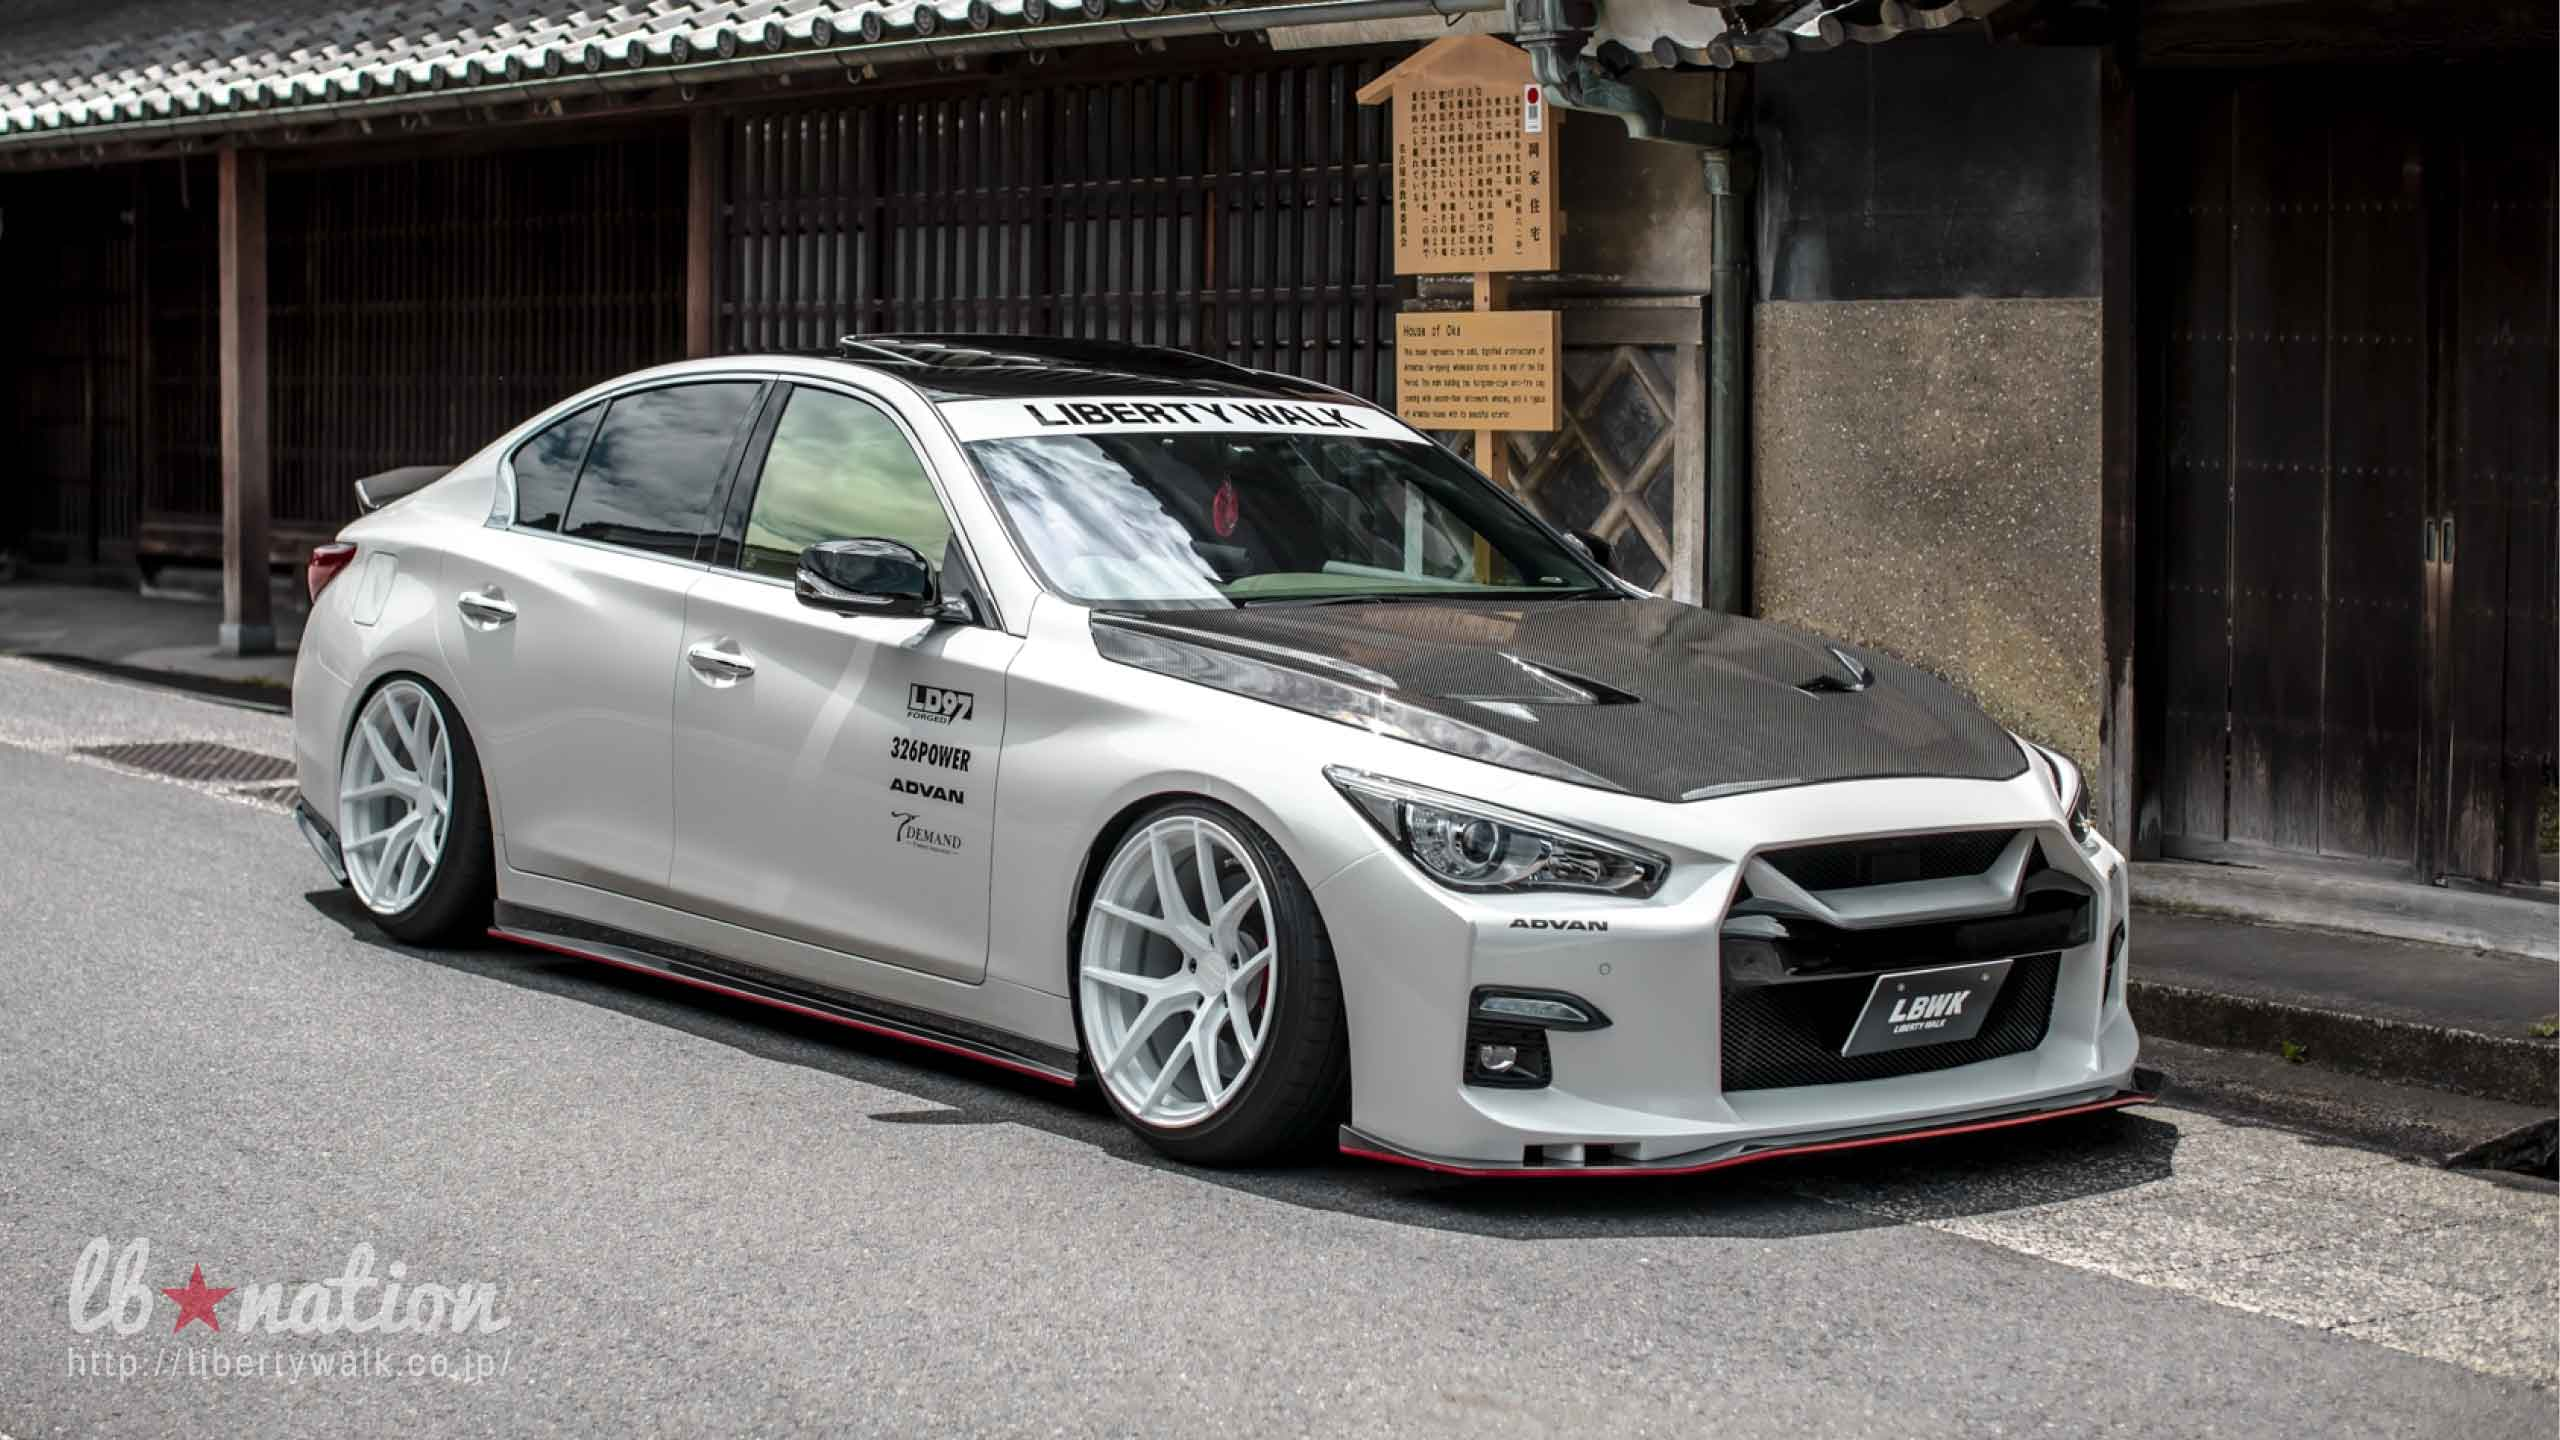 V37_1 lb★nation  NISSAN V37 SKYLINE / INFINITI Q50